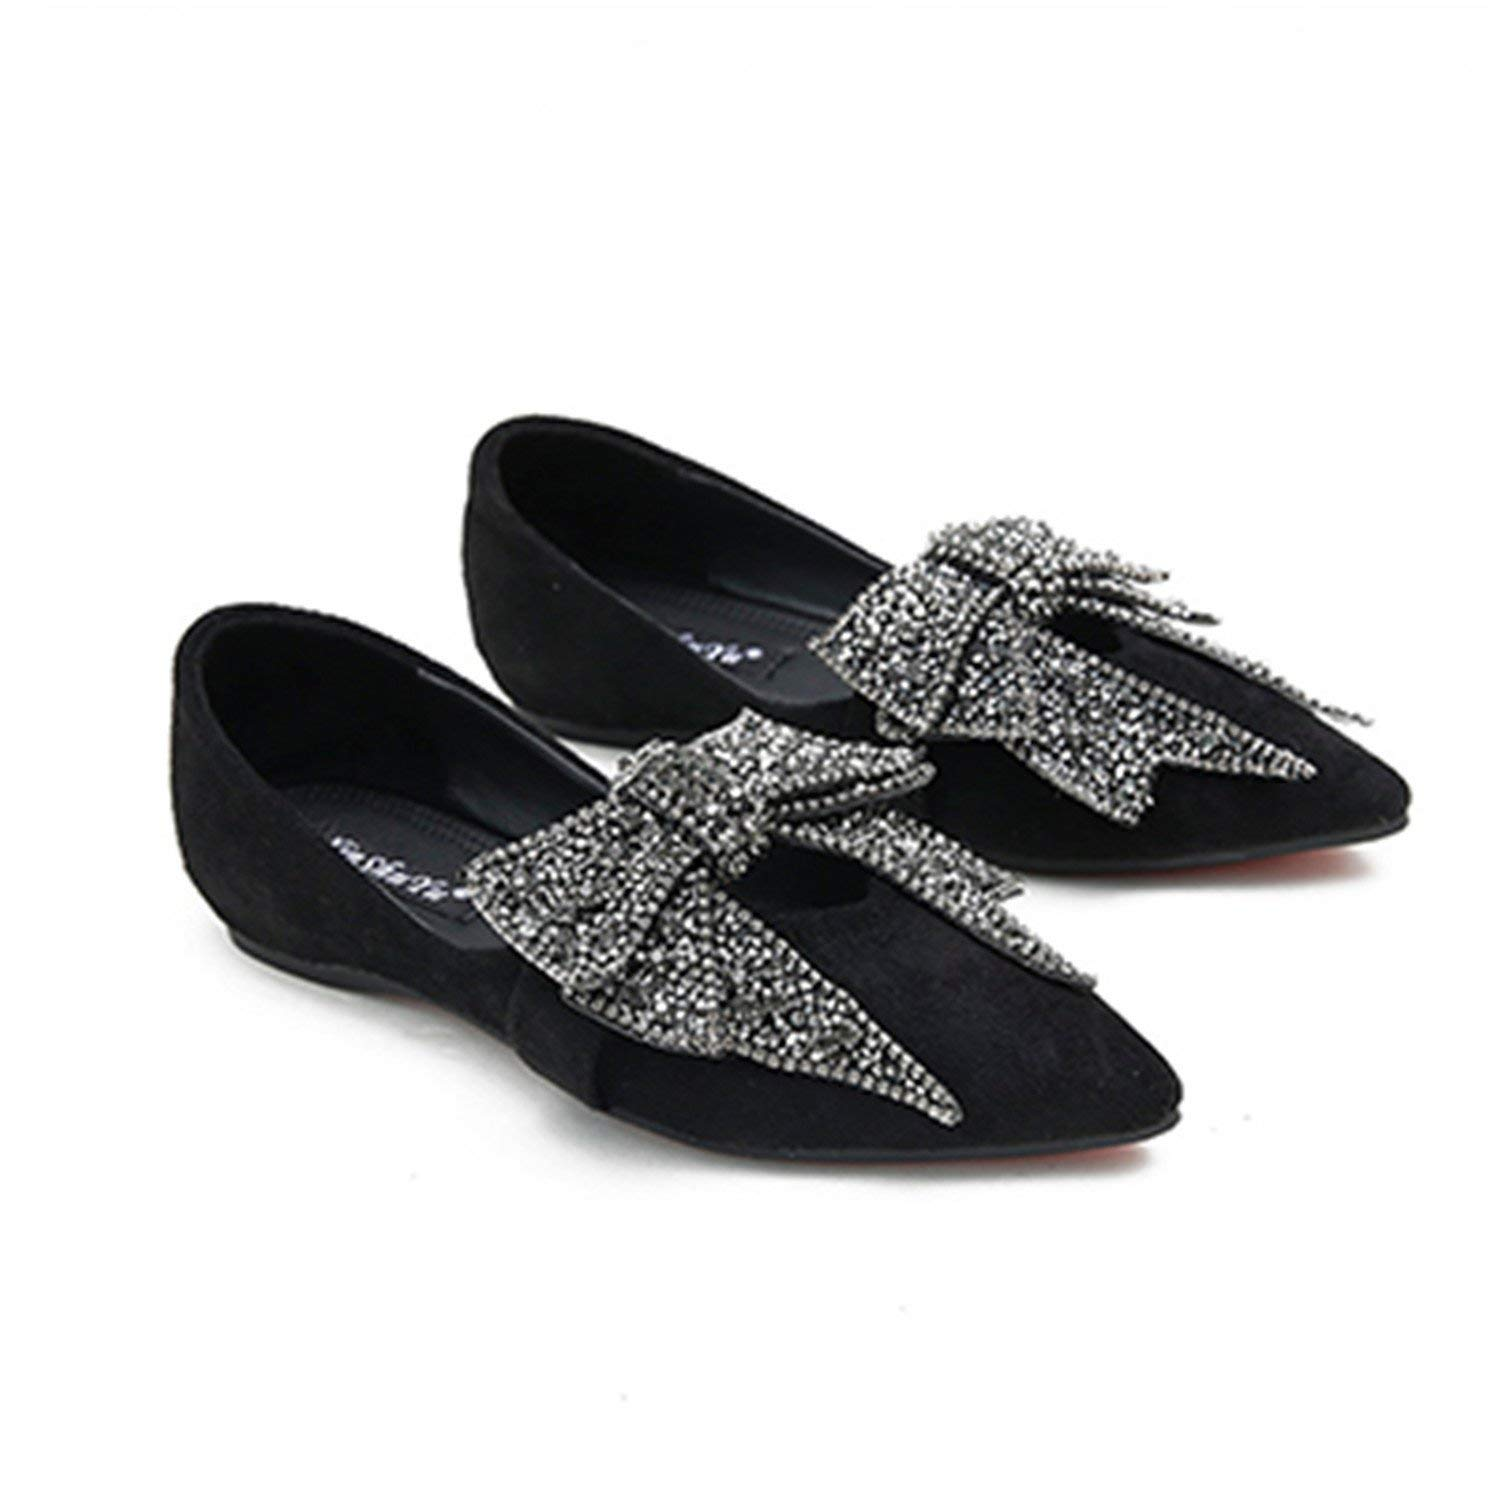 4351a5f44e Get Quotations · Feilongzaitianba Shoes Ladies Leather Shoes Womens Pointed  Toe Dress Shoes Woman Black Woman Flat Shoes Heels